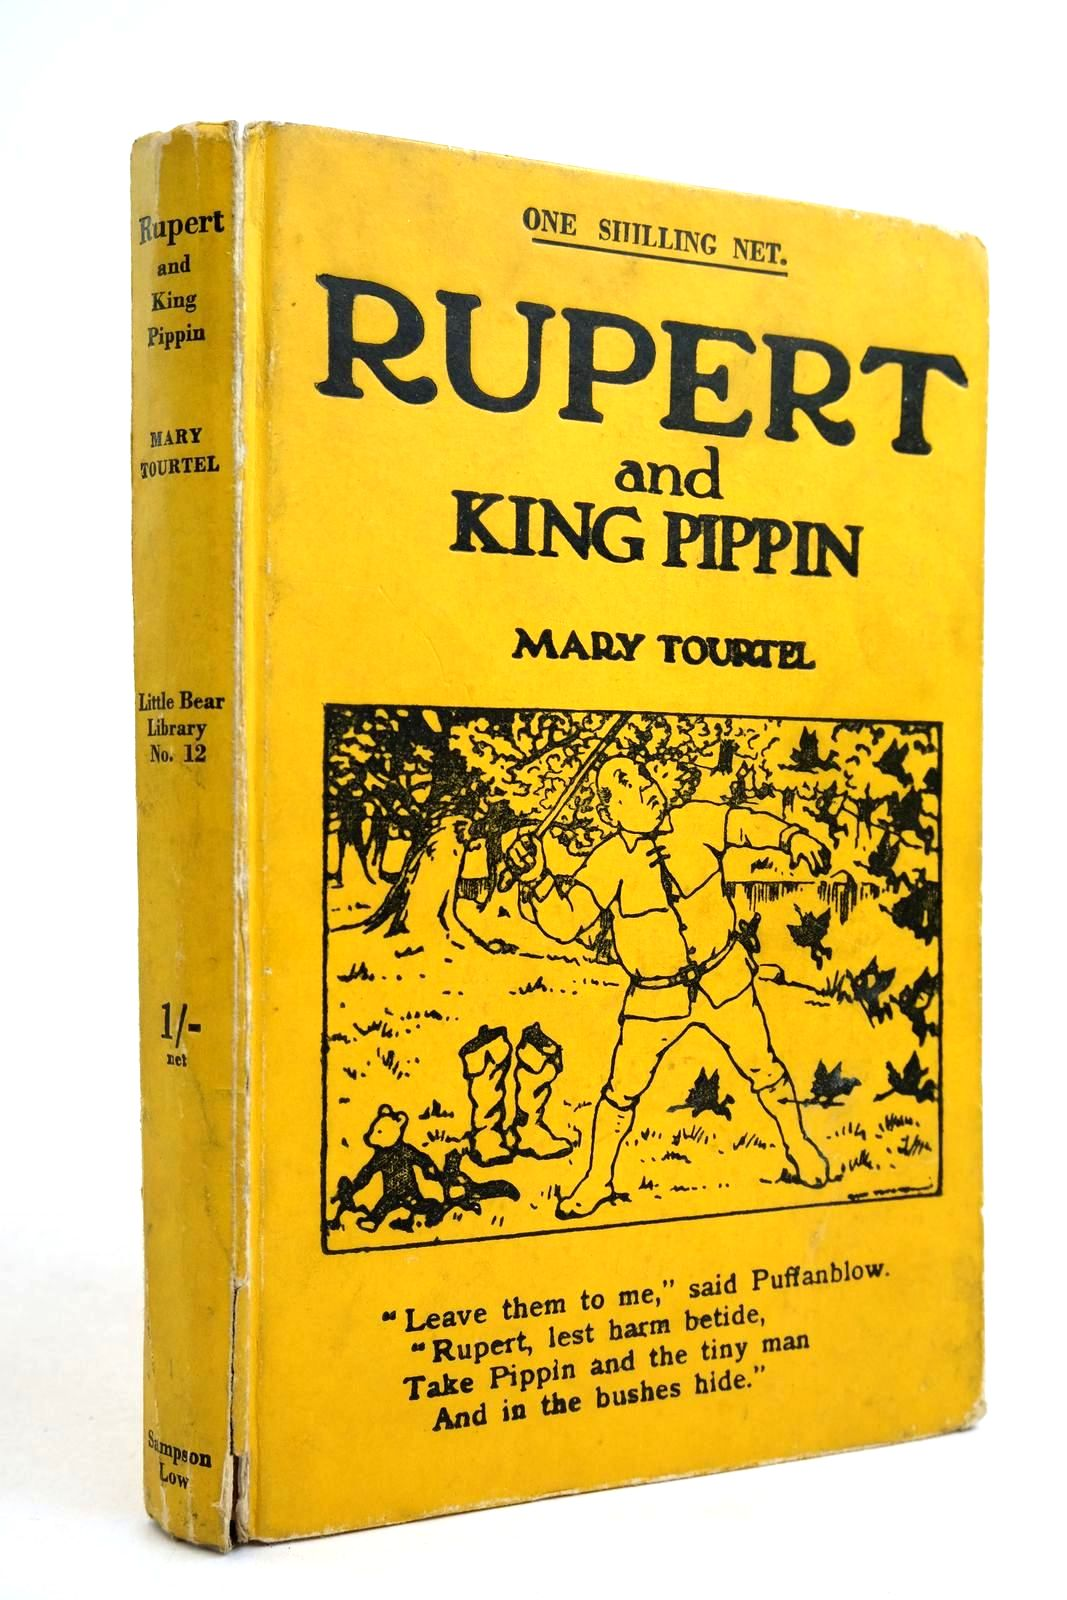 Photo of RUPERT AND KING PIPPIN - RUPERT LITTLE BEAR LIBRARY No. 12- Stock Number: 2134474